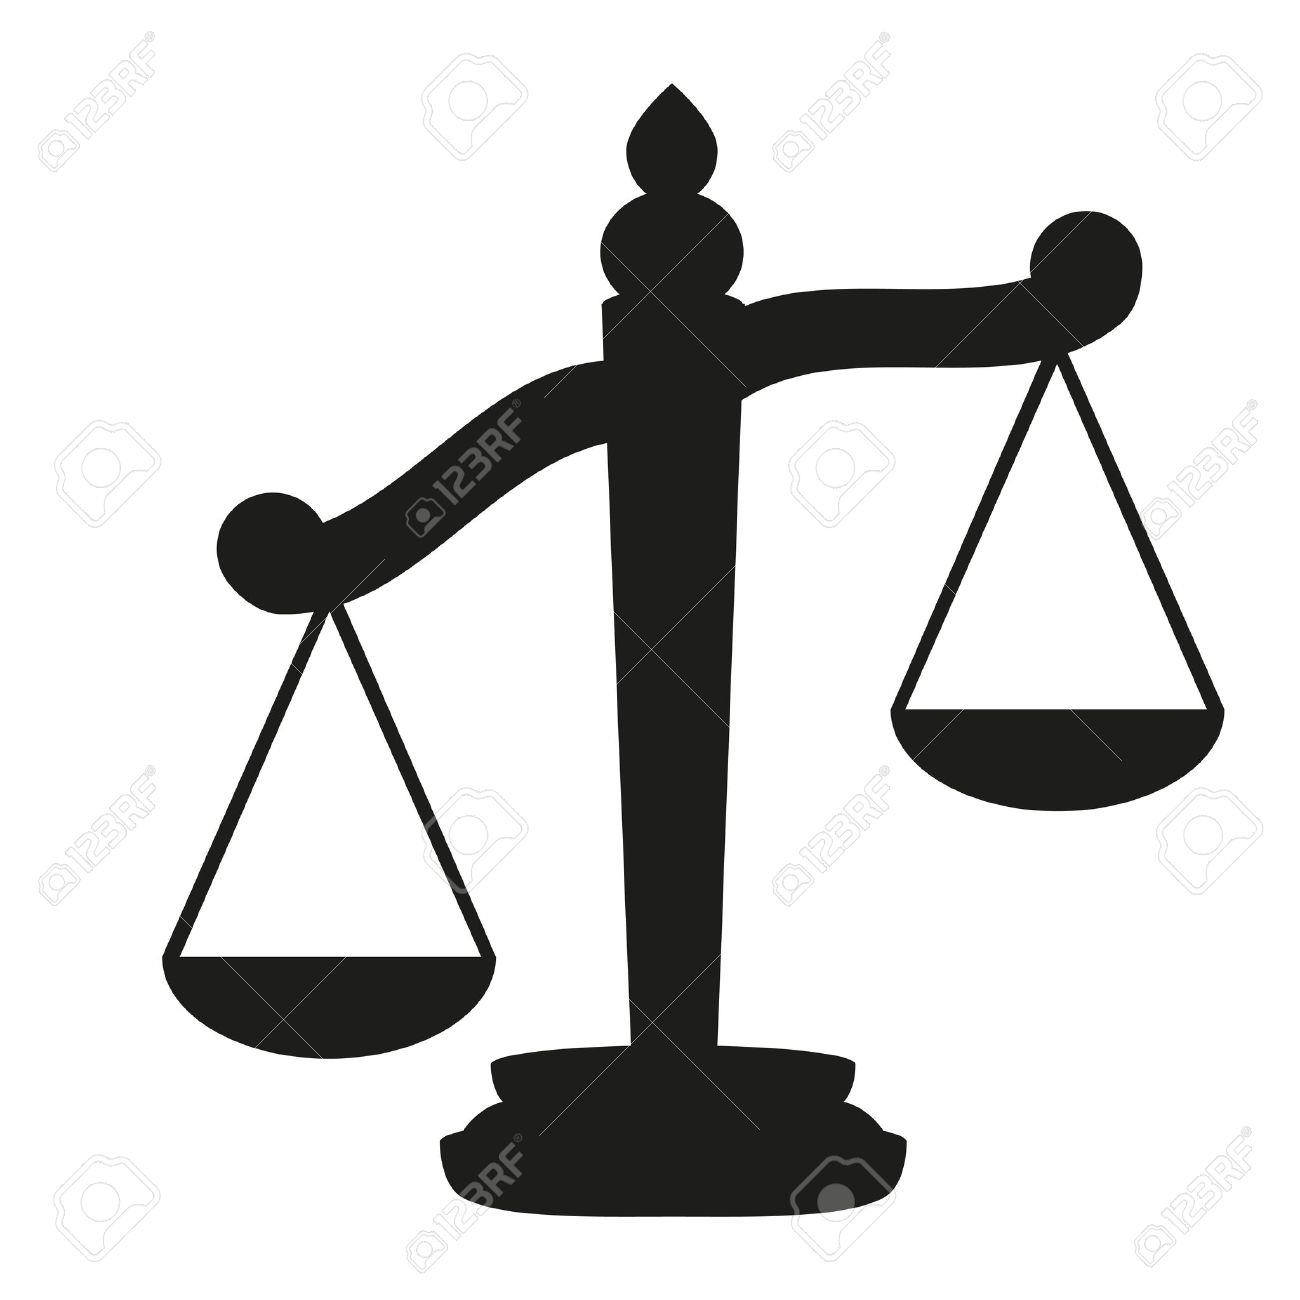 scales of justice royalty free cliparts vectors and stock rh 123rf com scales of justice vector image scales of justice vector free download